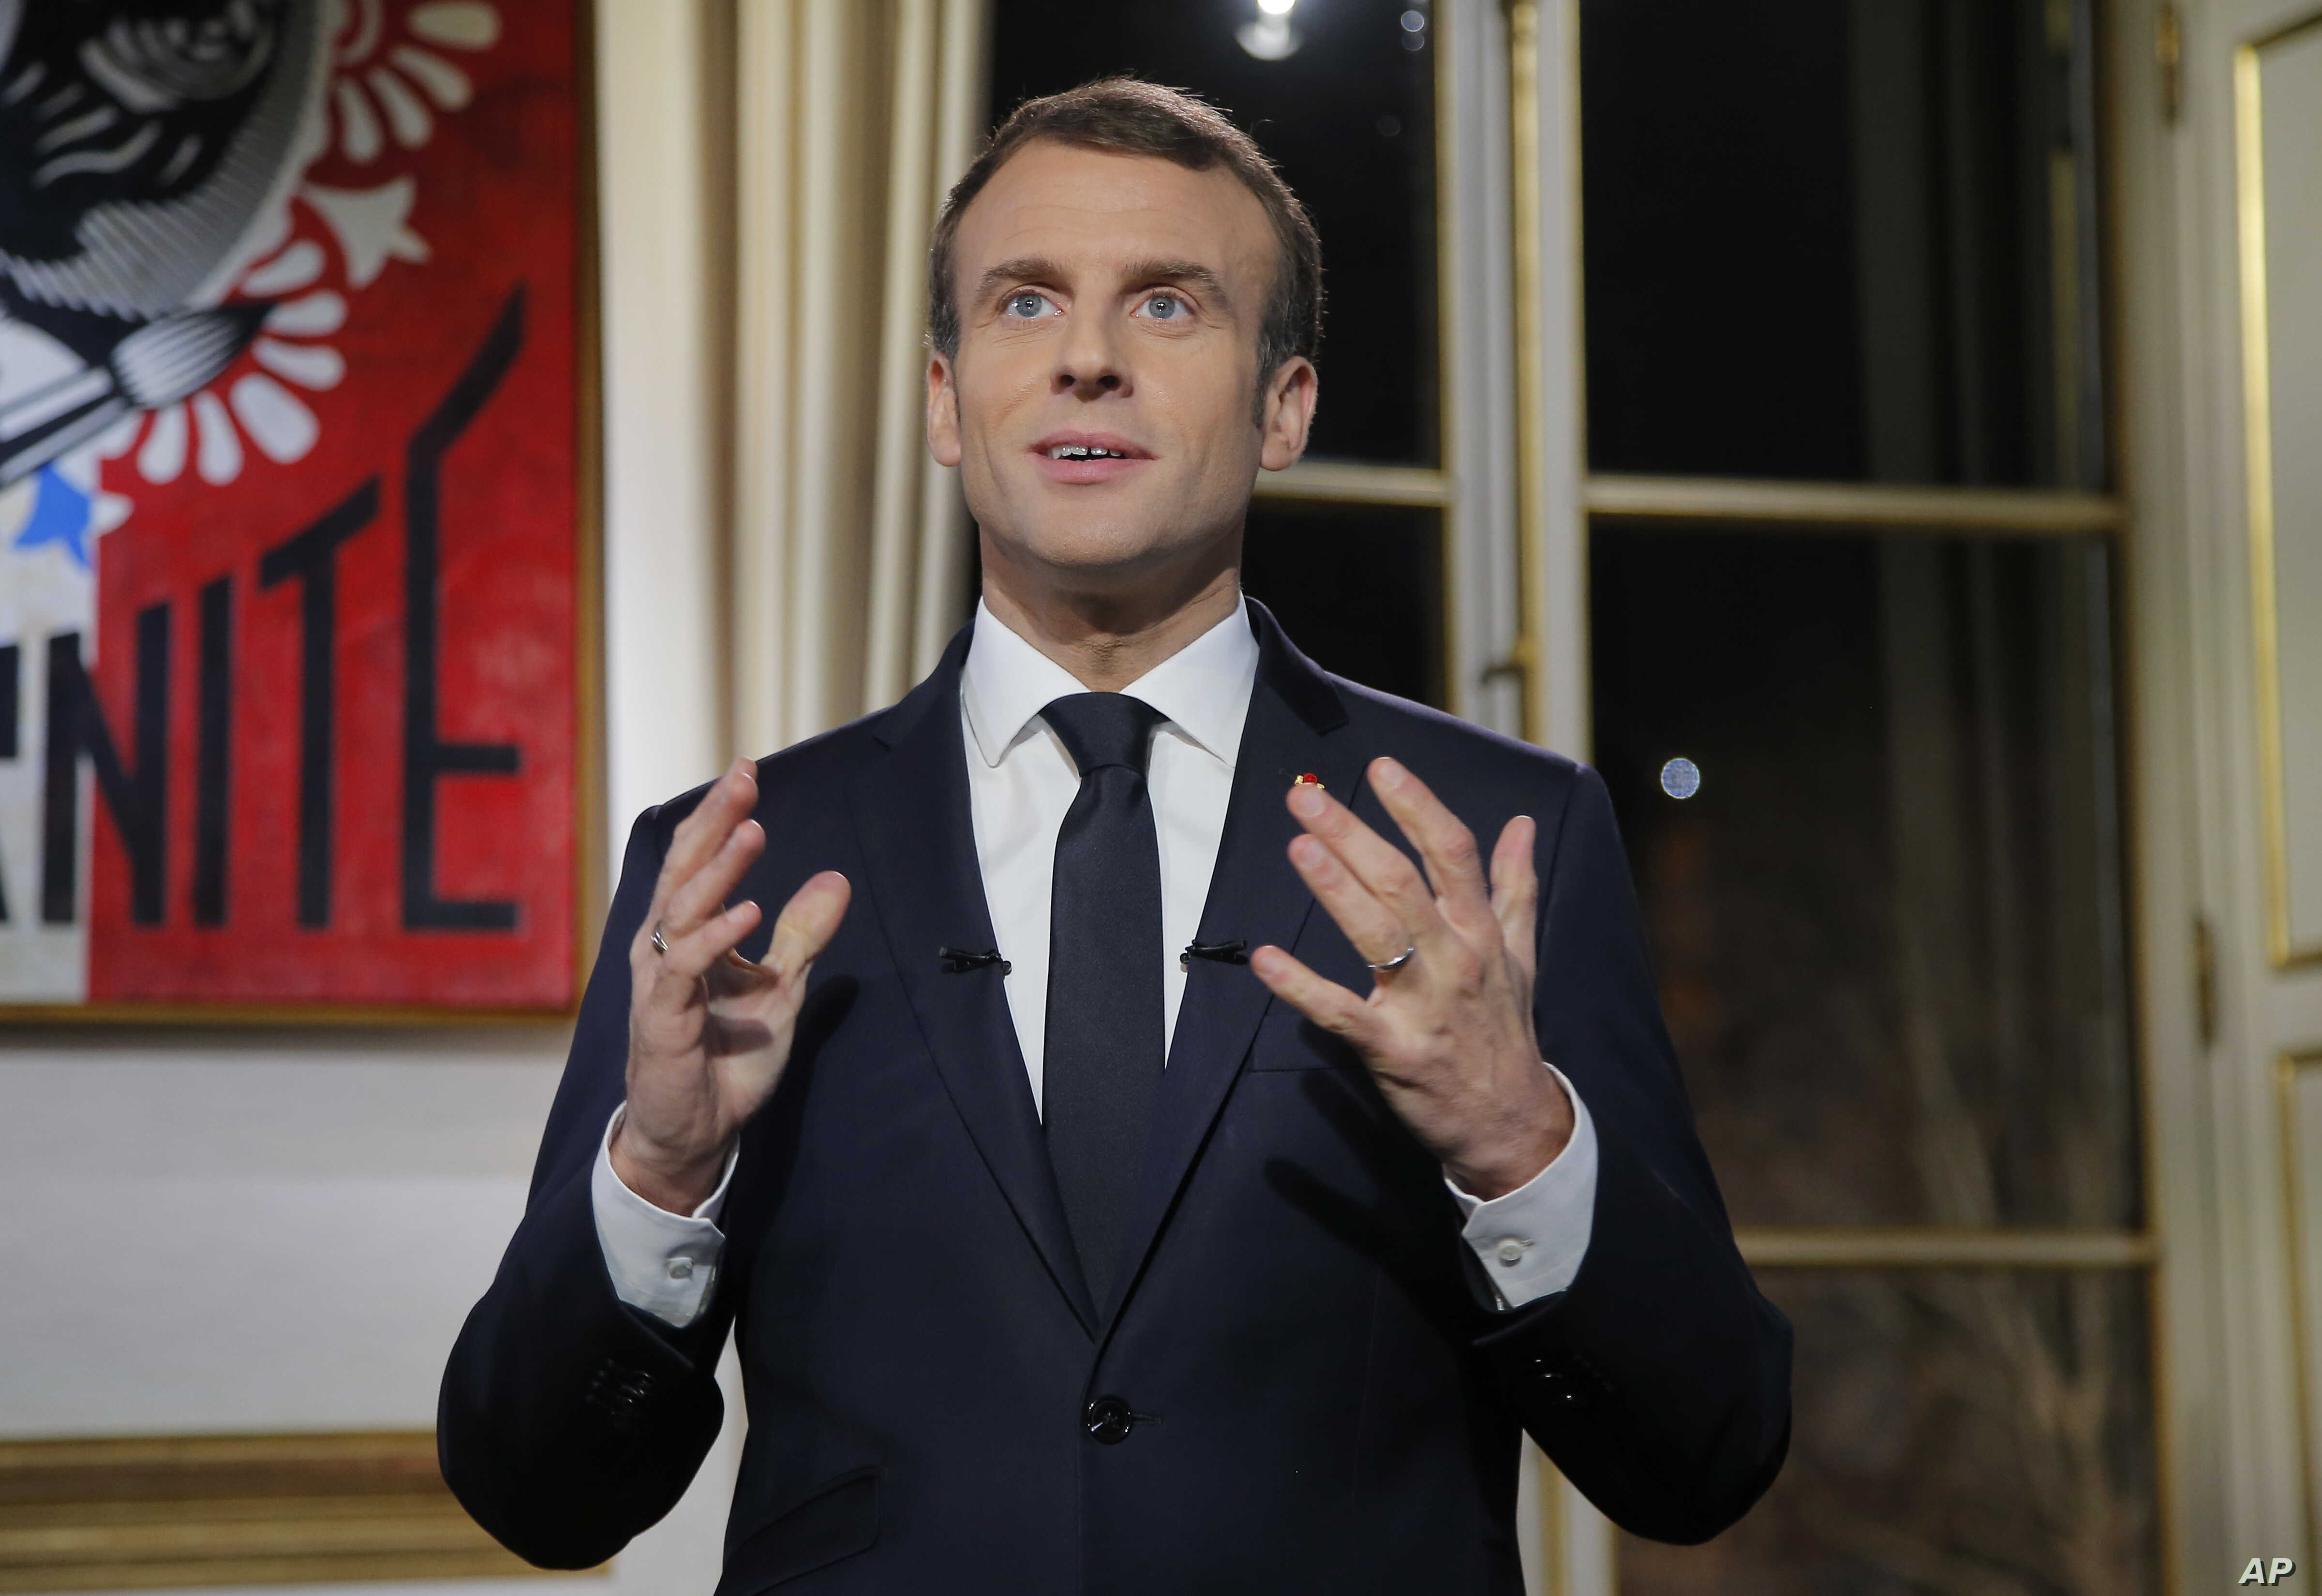 French President Emmanuel Macron, gestures as he poses for a photograph after the recording of his New Year's speech at the Elysee Palace, in Paris, Dec. 31, 2018.